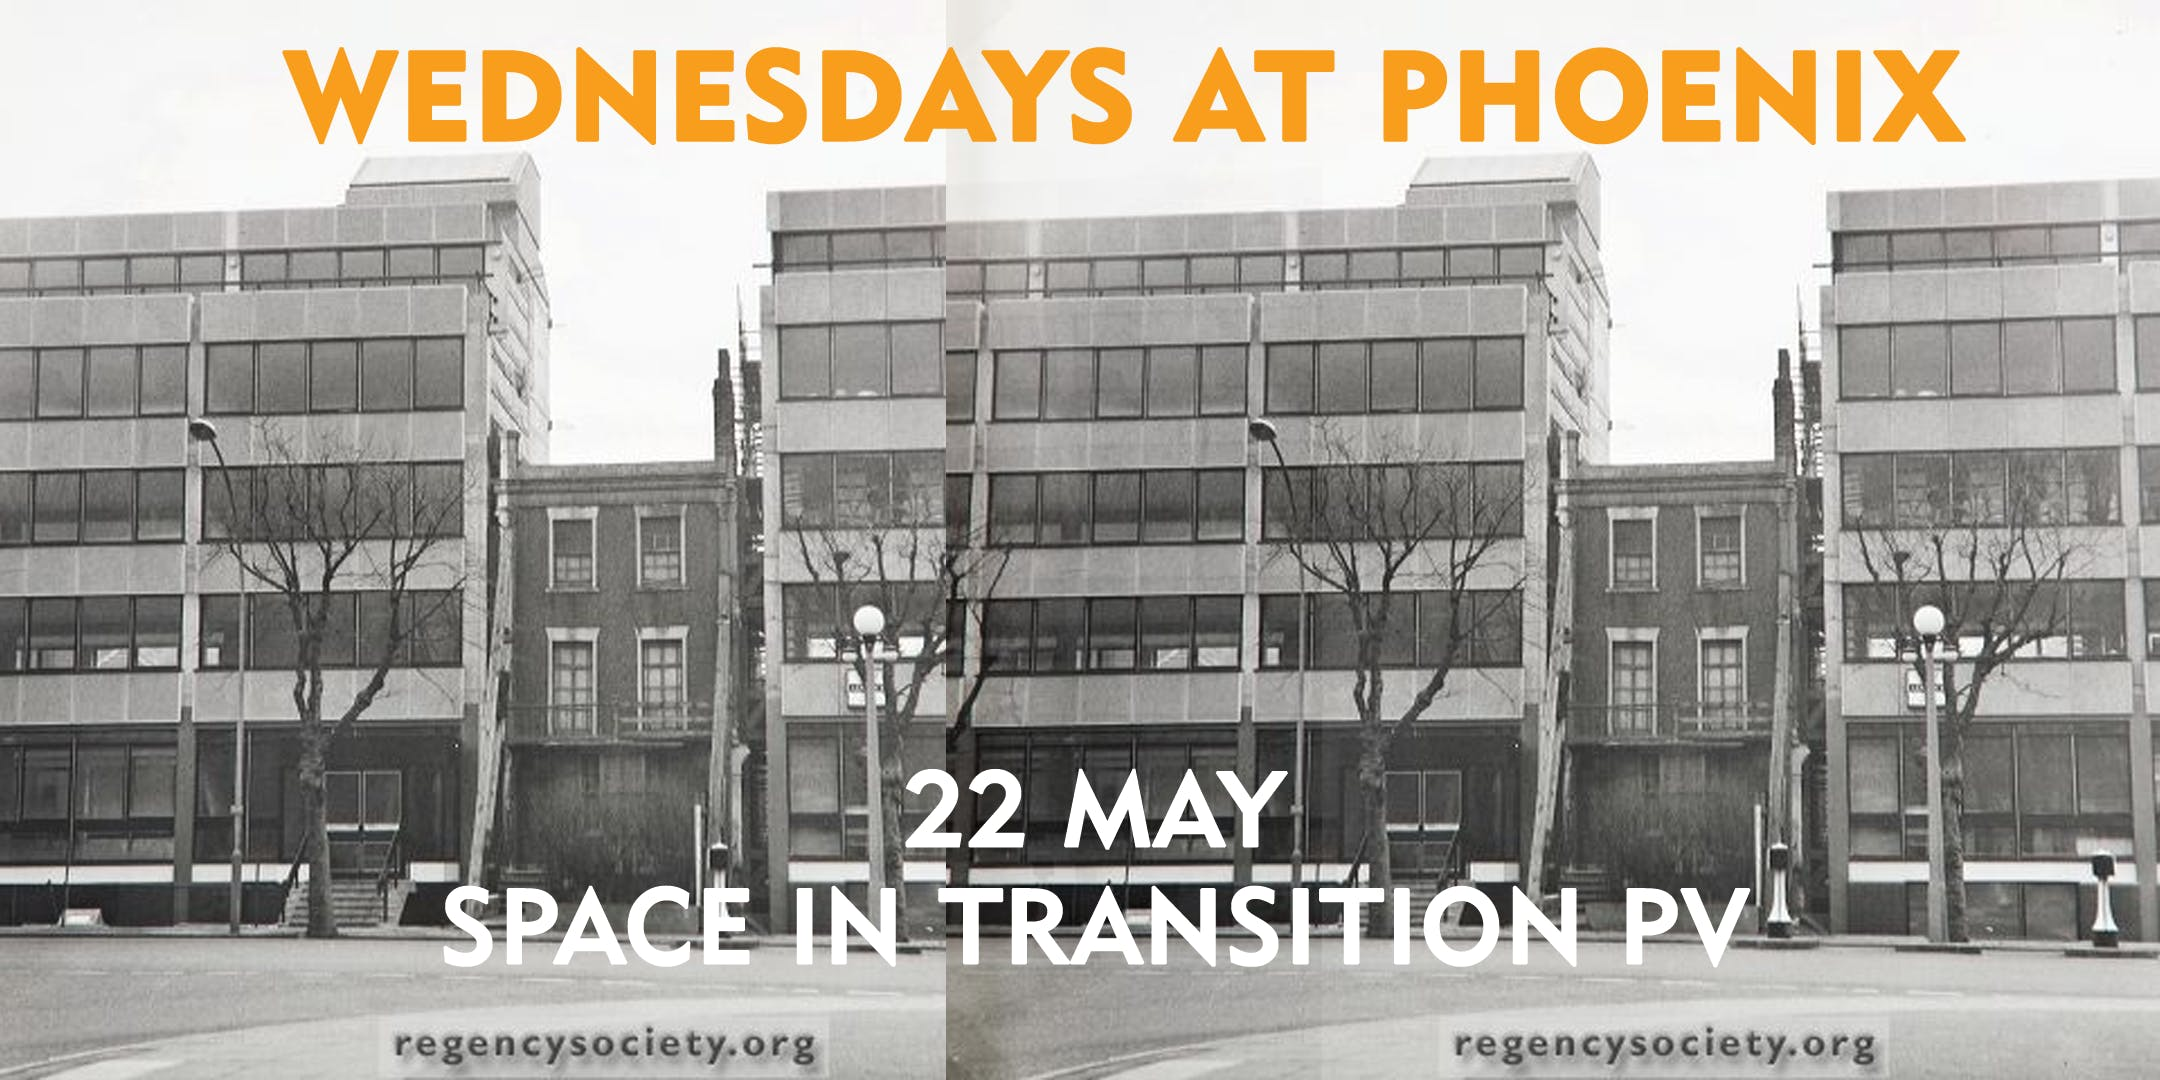 Special Wednesday Event: Space In Transition Private View